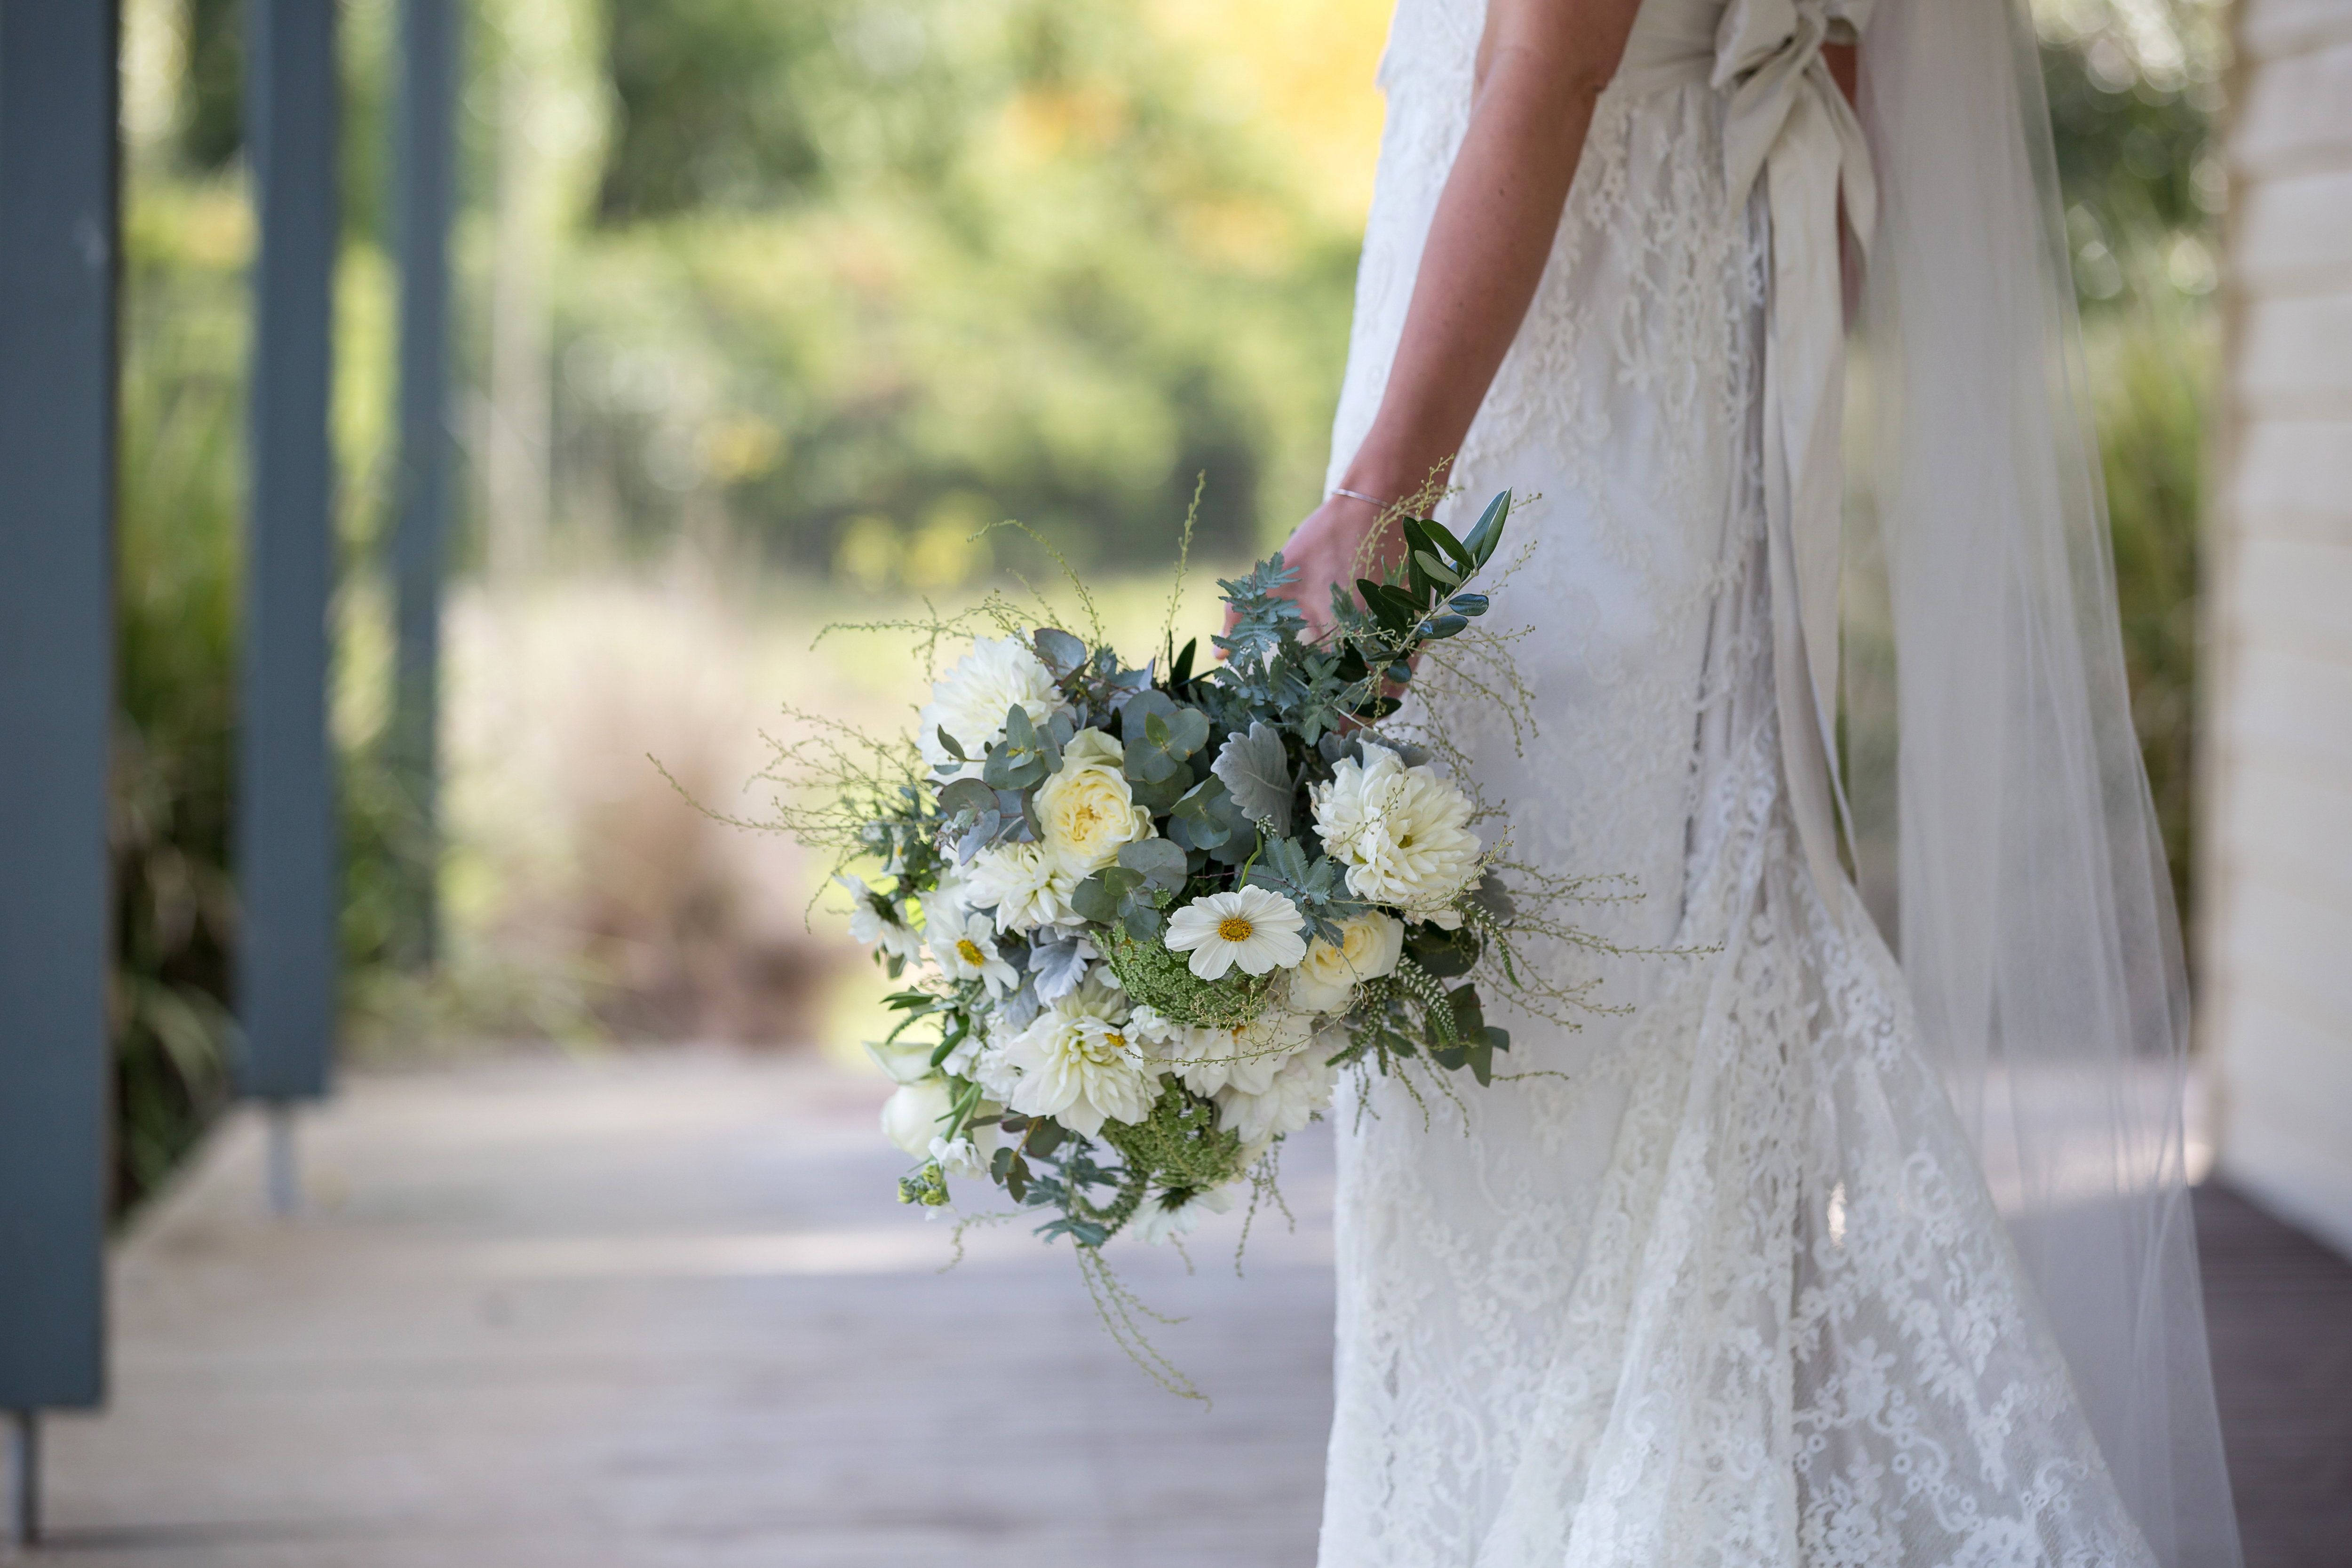 Bride wearing lace gown and ribbon sash holding wedding flowers